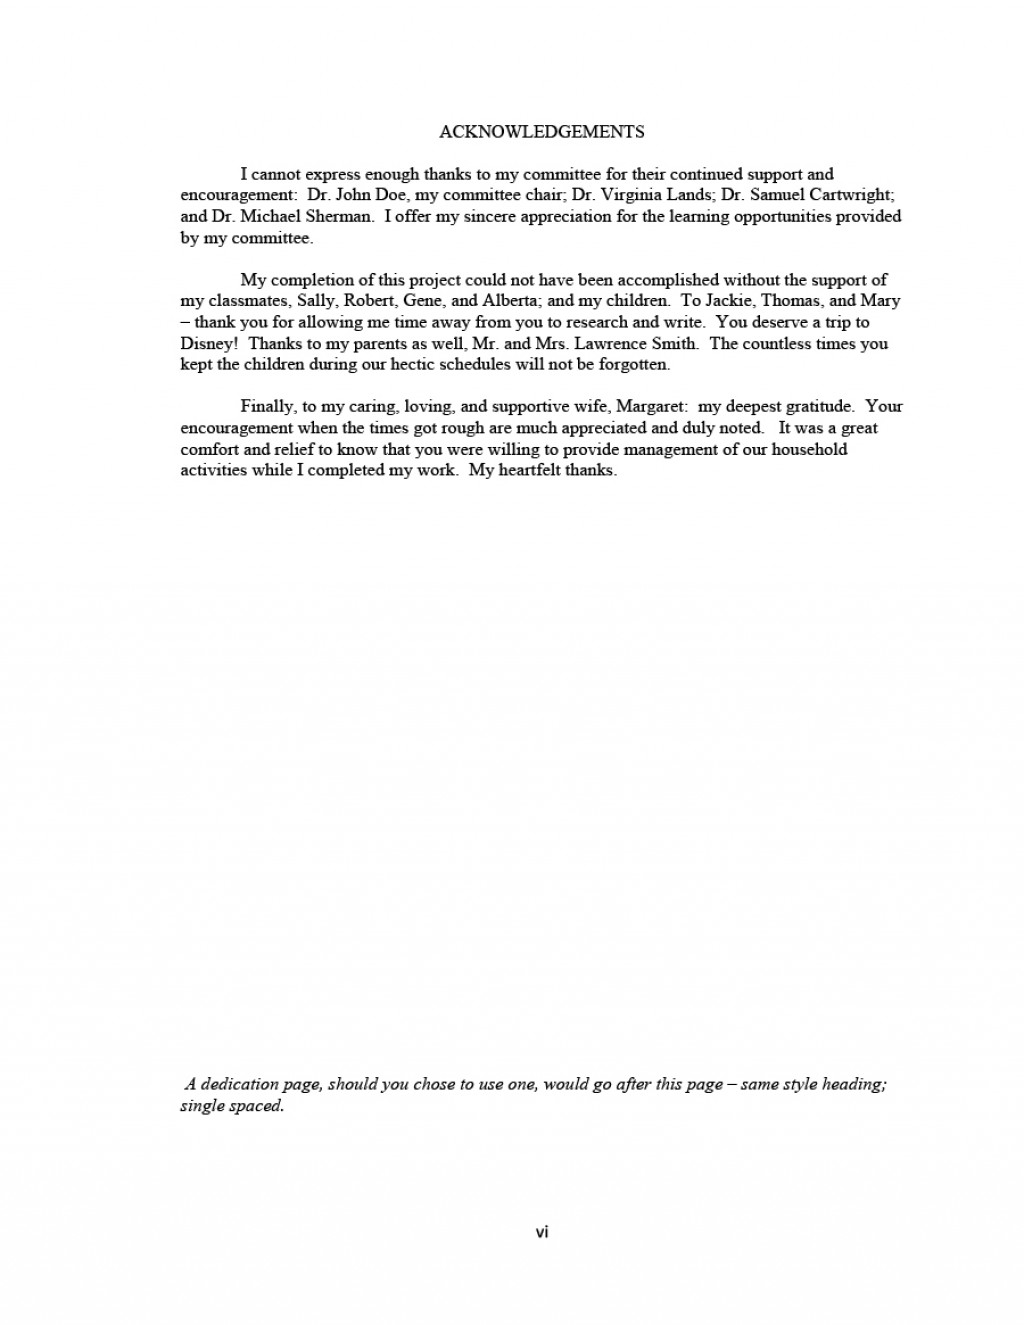 005 Research Paper Example Of Acknowledgement In Group Sample Top Pdf Large